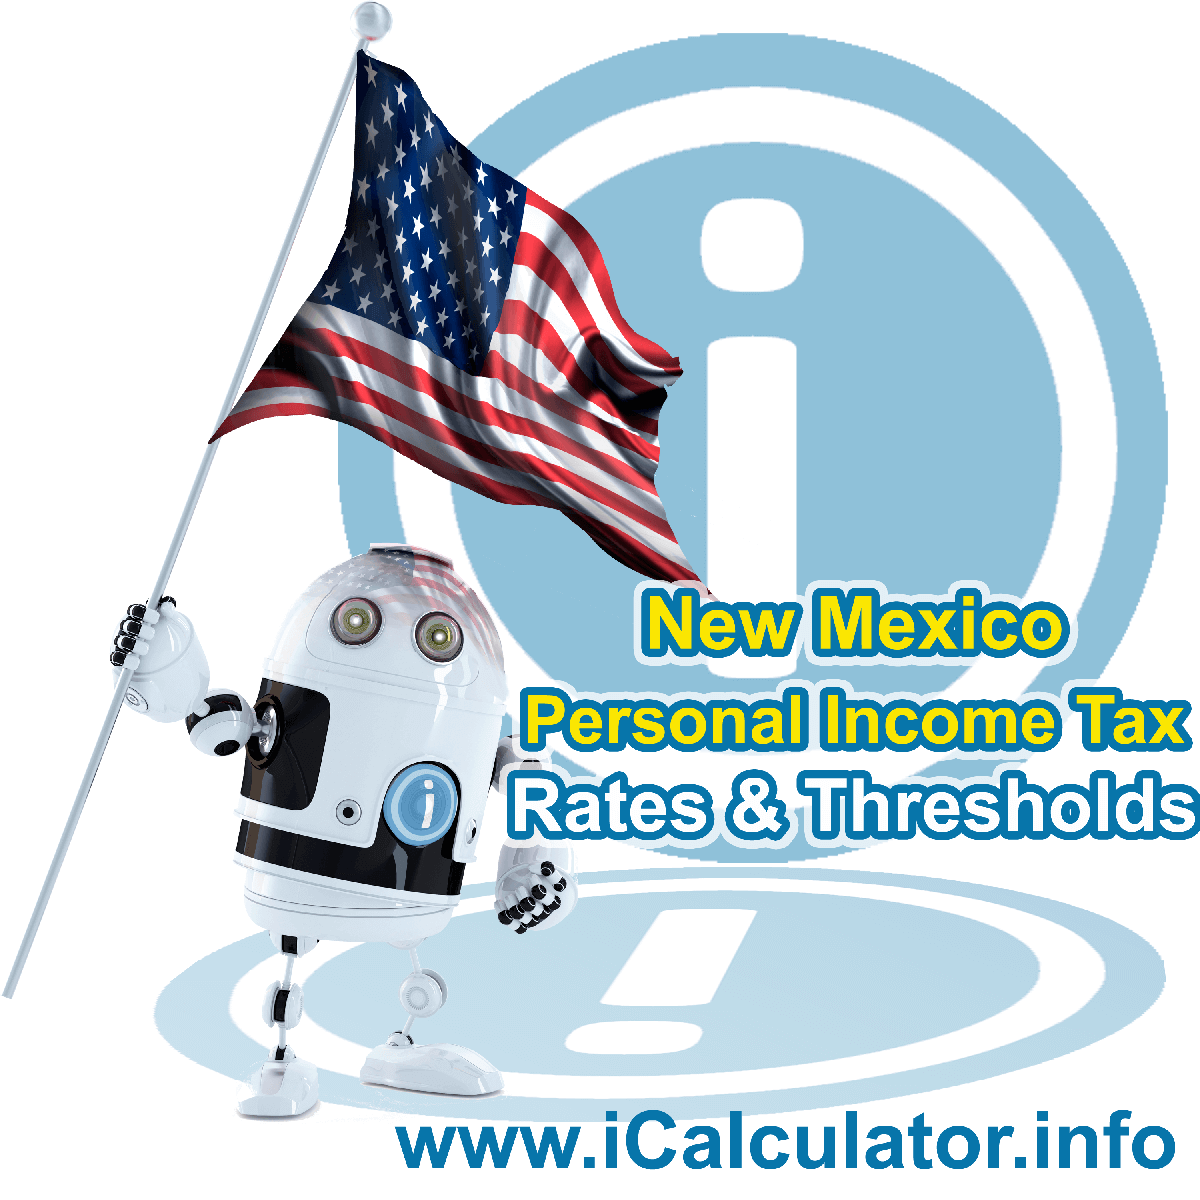 New Mexico State Tax Tables 2015. This image displays details of the New Mexico State Tax Tables for the 2015 tax return year which is provided in support of the 2015 US Tax Calculator